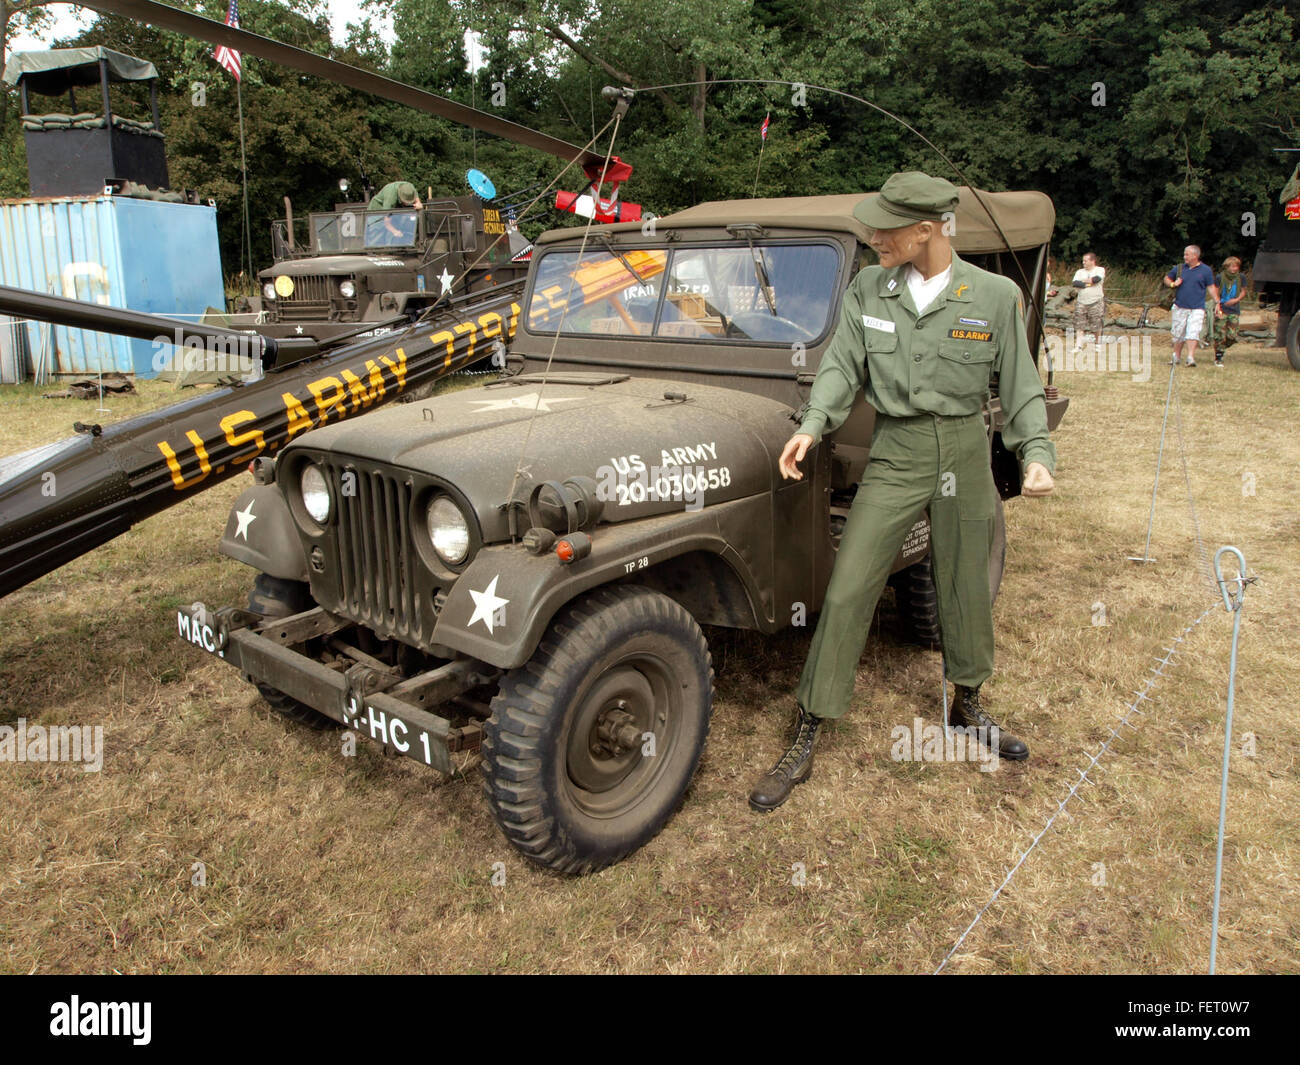 Willys US Army 20-030658 - Stock Image